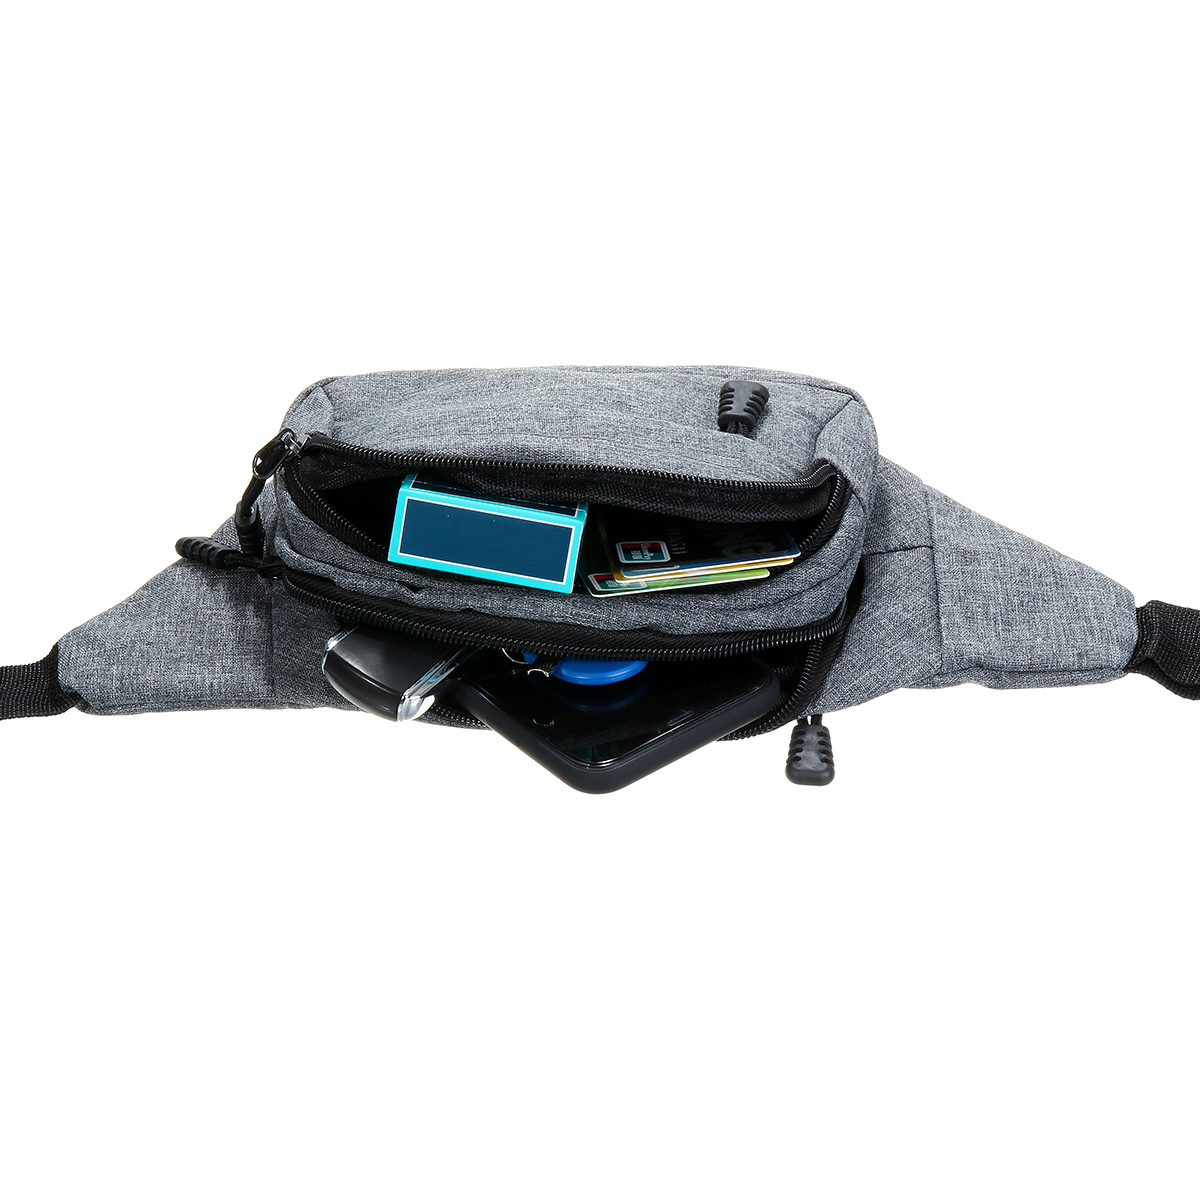 Large Capacity Sports Waist Bag Phone Bag Crossnody Bag For Outdoor Sports Hiking Jogging Running